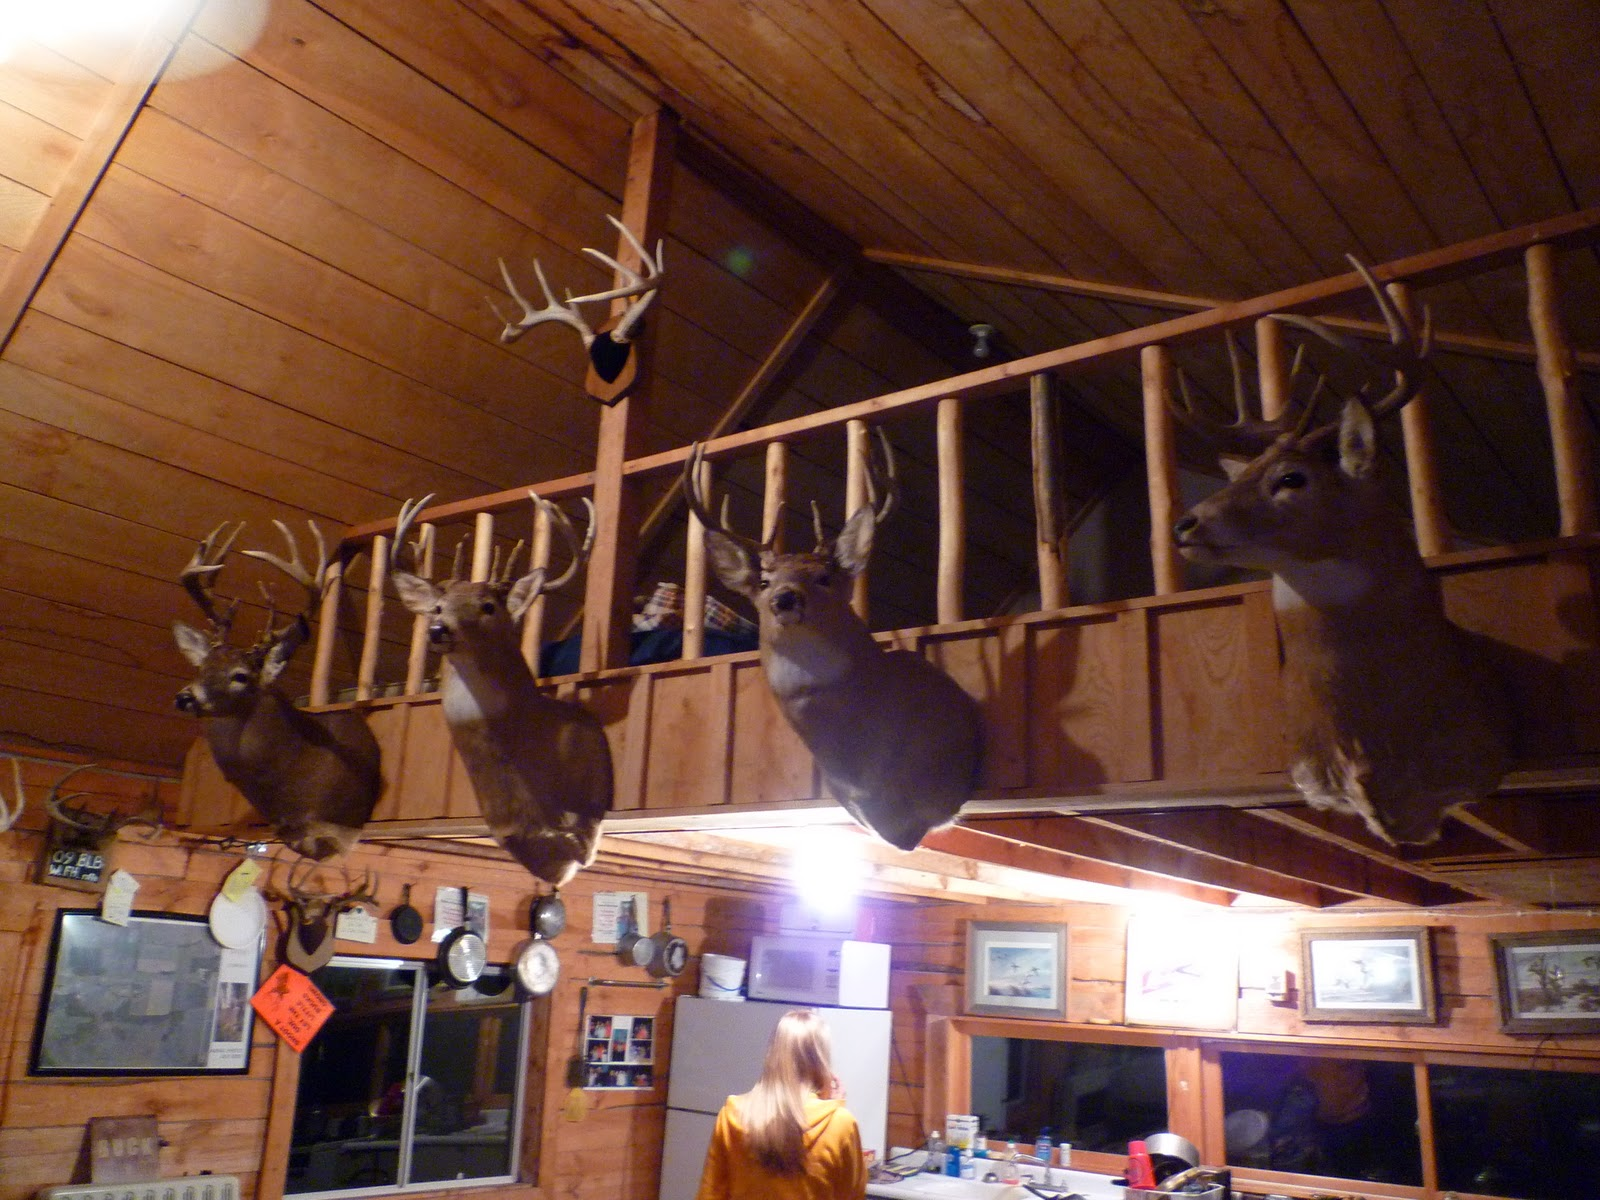 Astonishing Bow Hunting Hunting Cabin And More Trail Camera Pics Largest Home Design Picture Inspirations Pitcheantrous